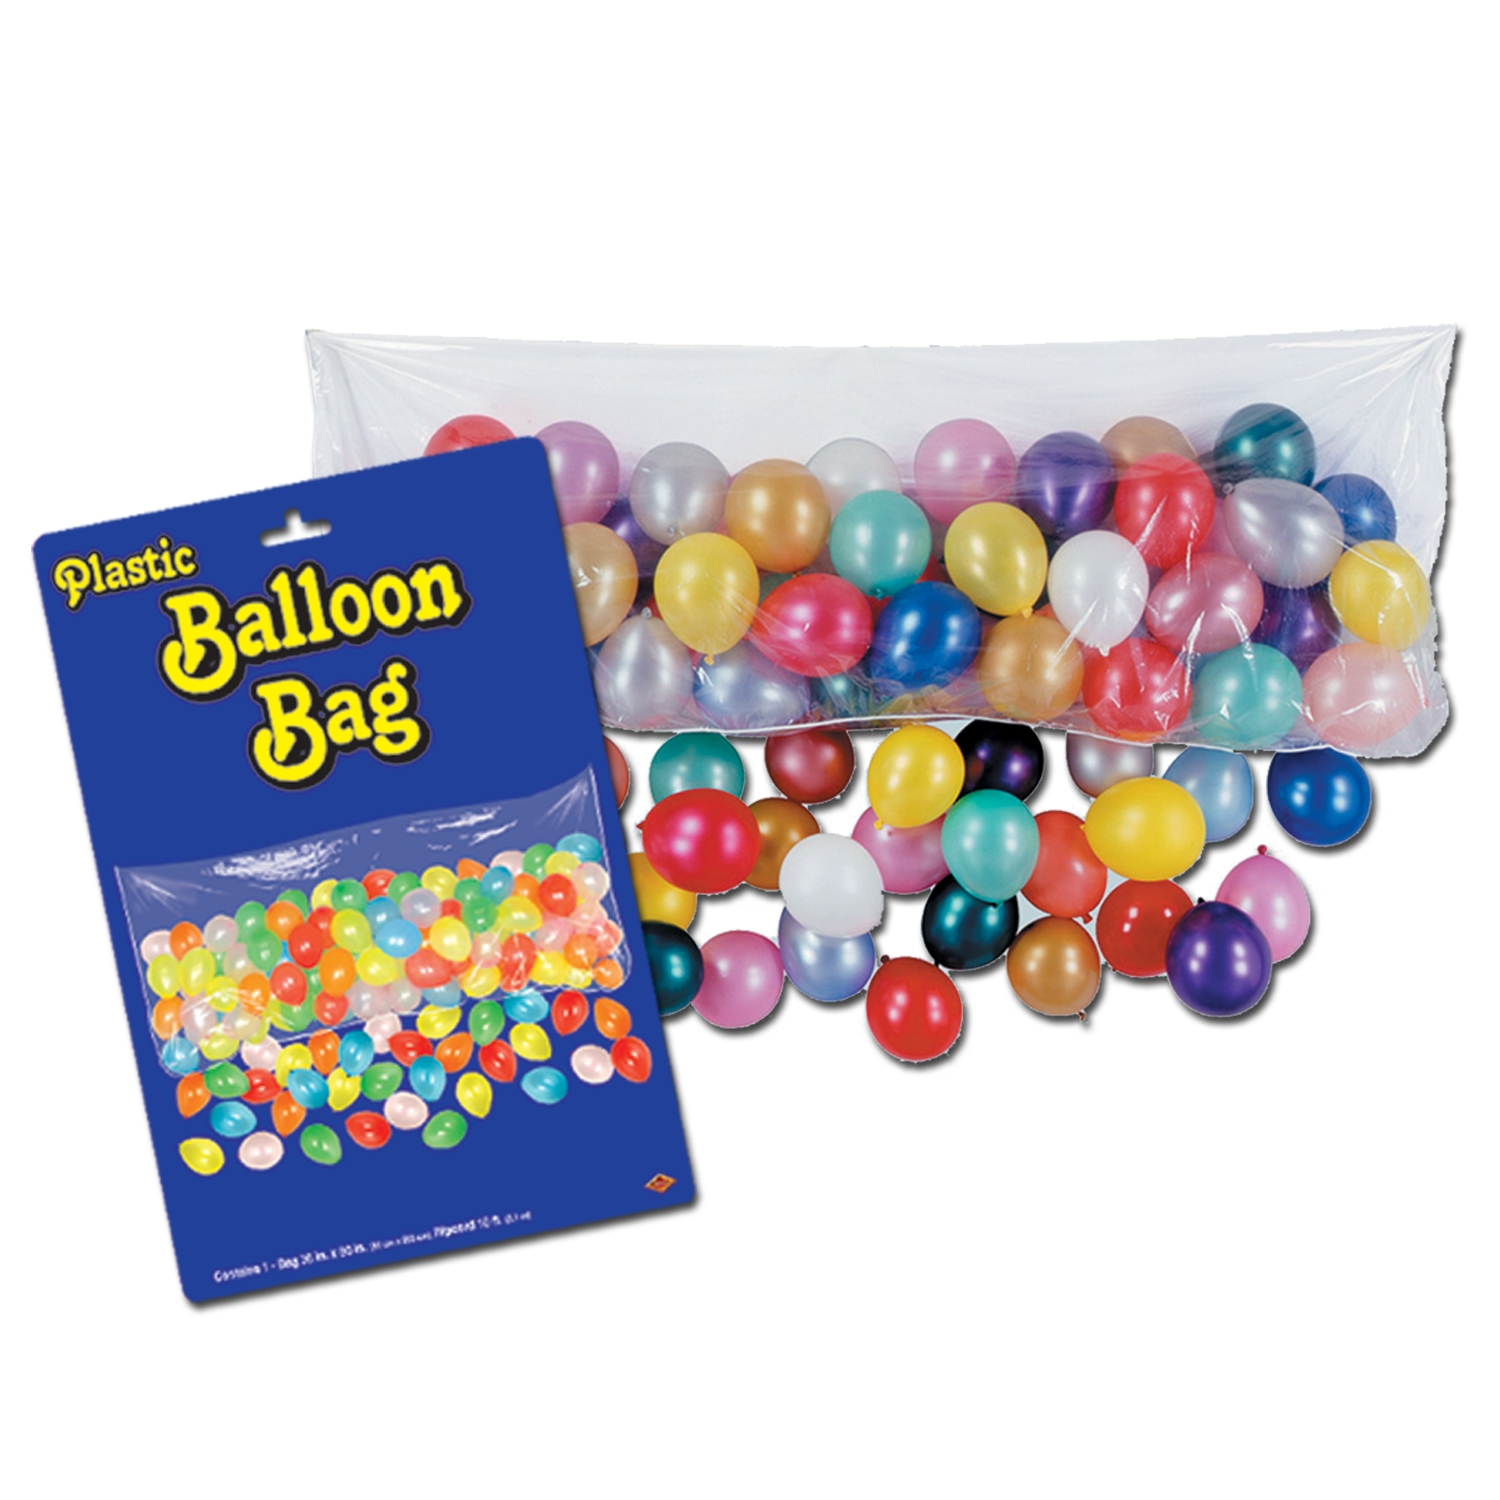 "Plastic Balloon Bag 3 x 6 8"" (Packed 1 Each) plastic, balloon, bag, drop, kit, surprise, decoration, hanging, new years eve, wholesale, inexpensive, bulk"